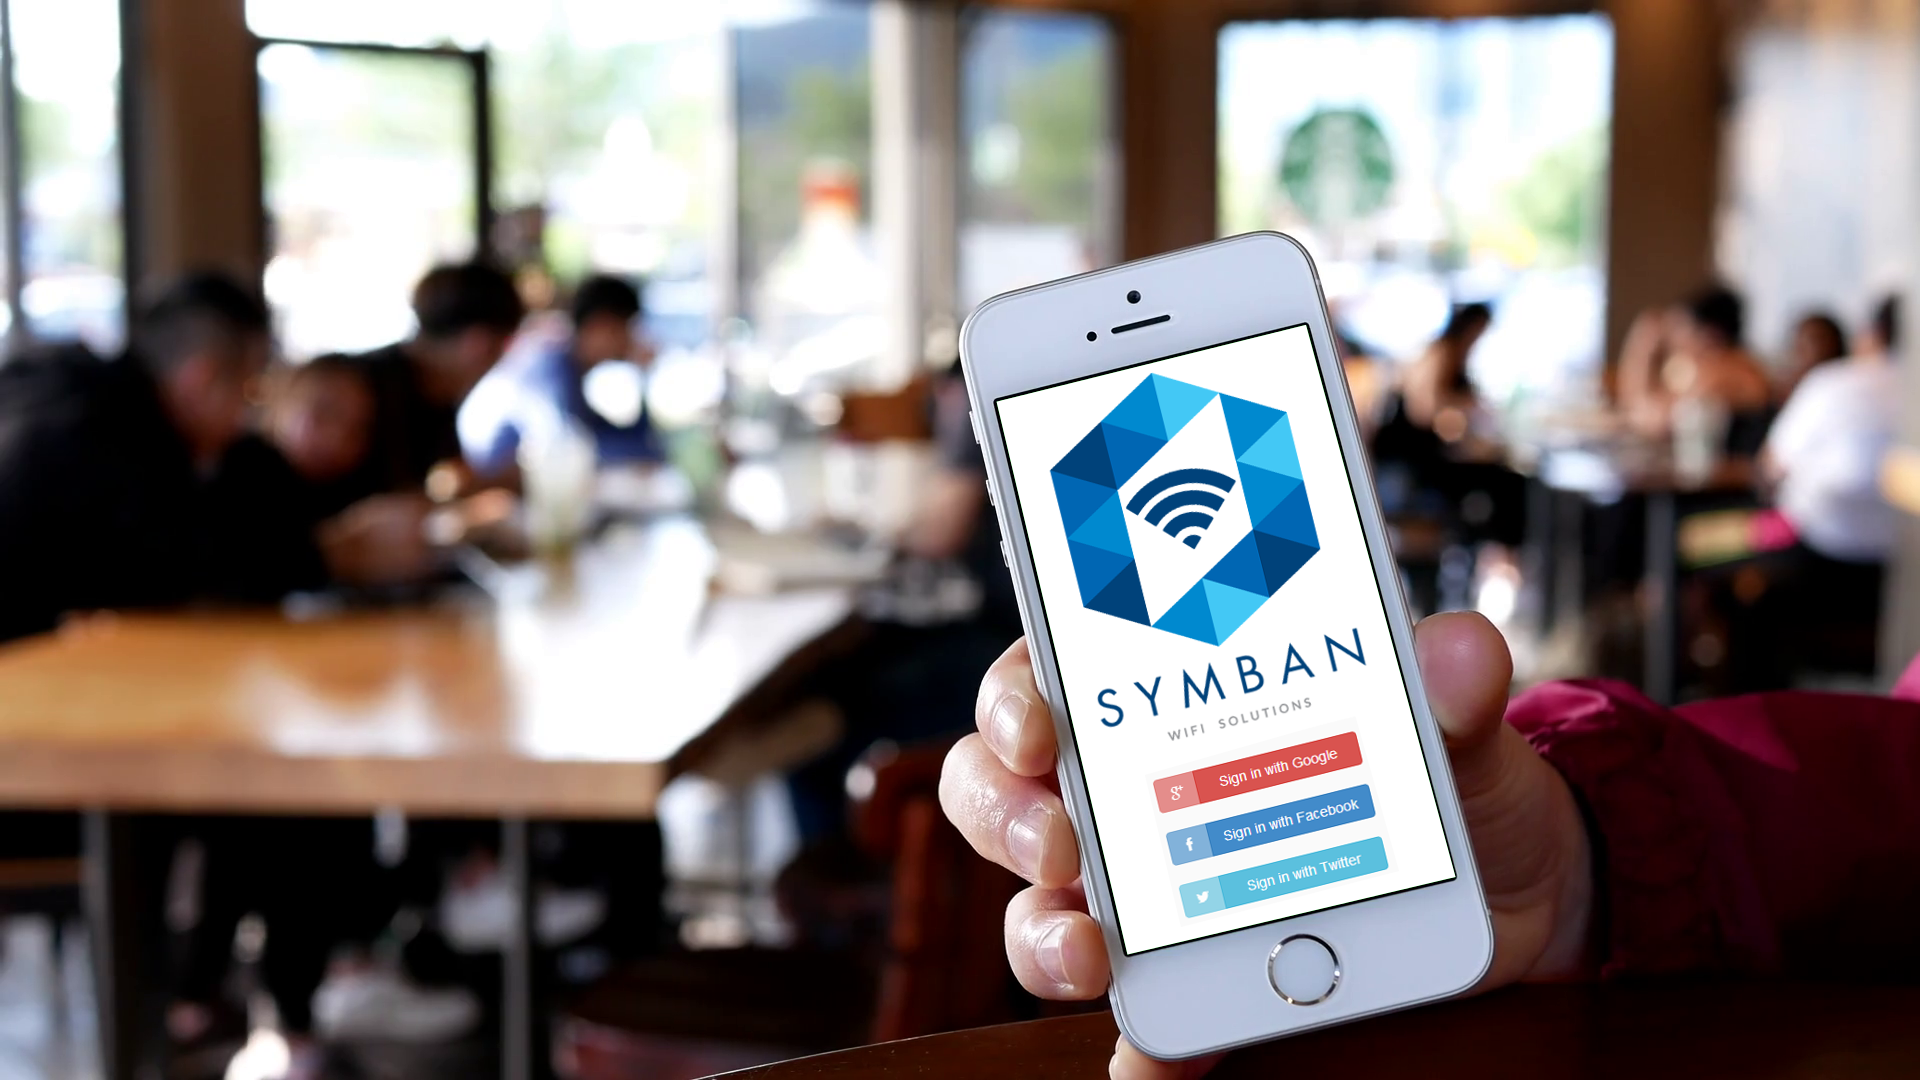 Symban WiFi sign in at venue